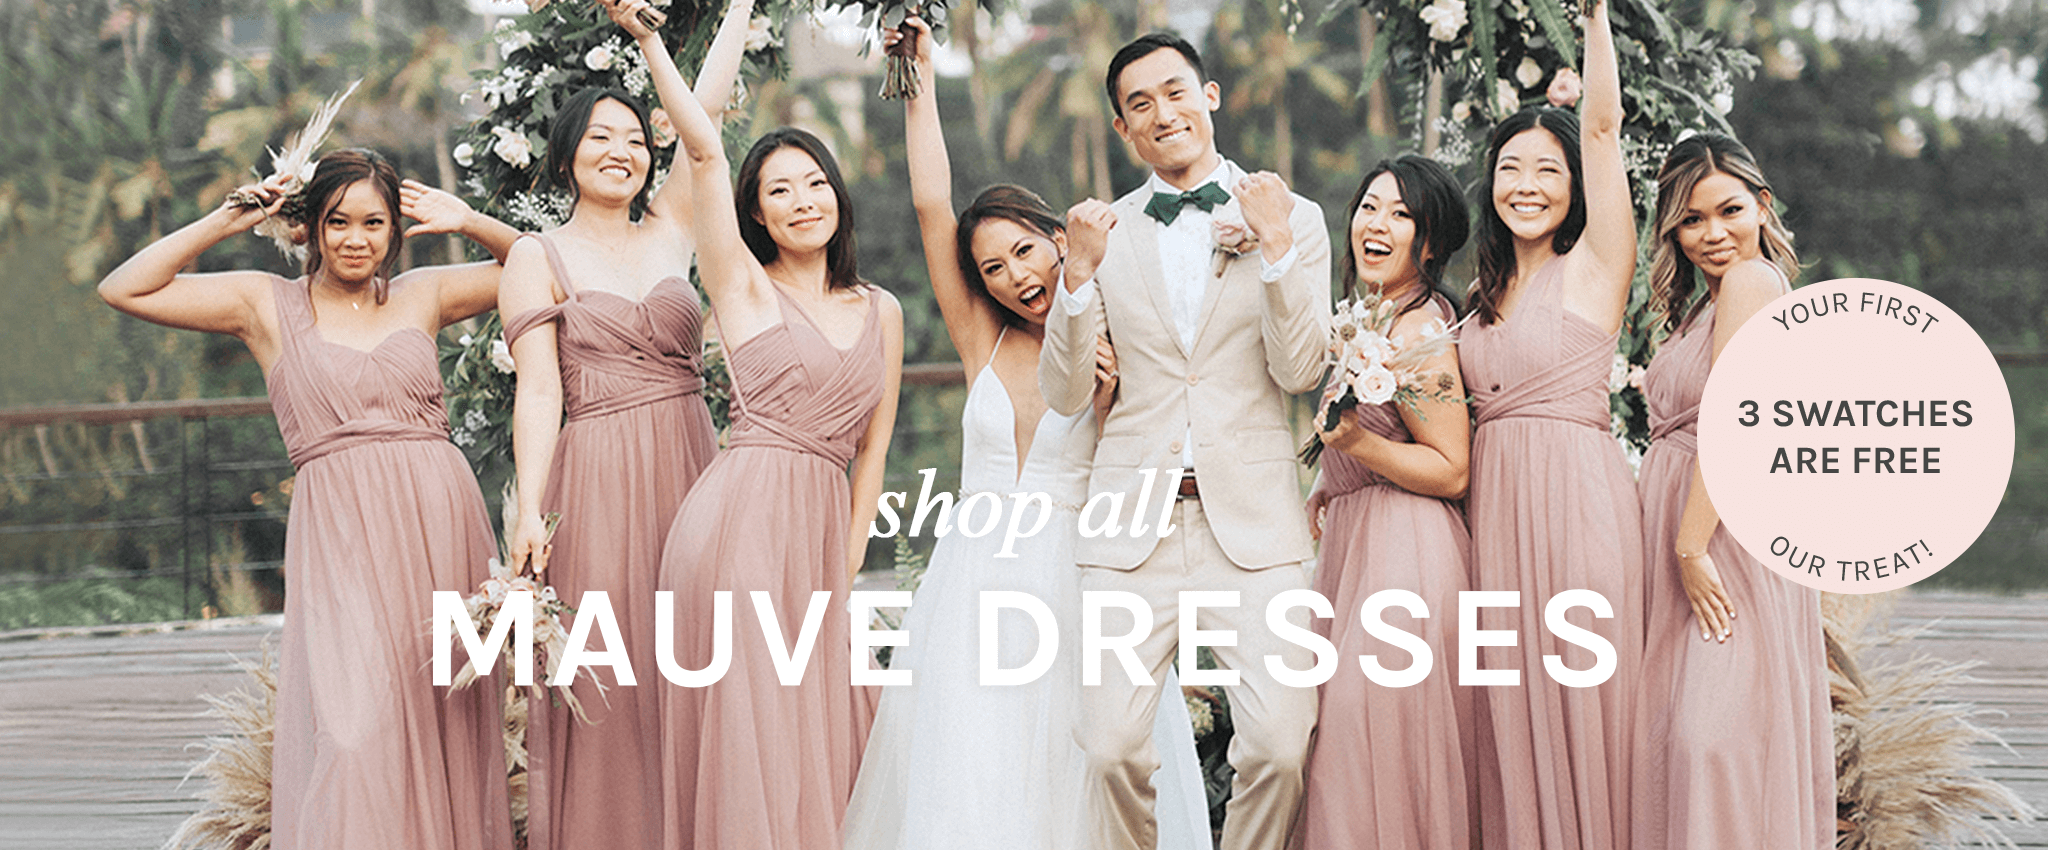 shop all Mauve dresses   your first 3 swatches are free, our treat  Birdy Grey